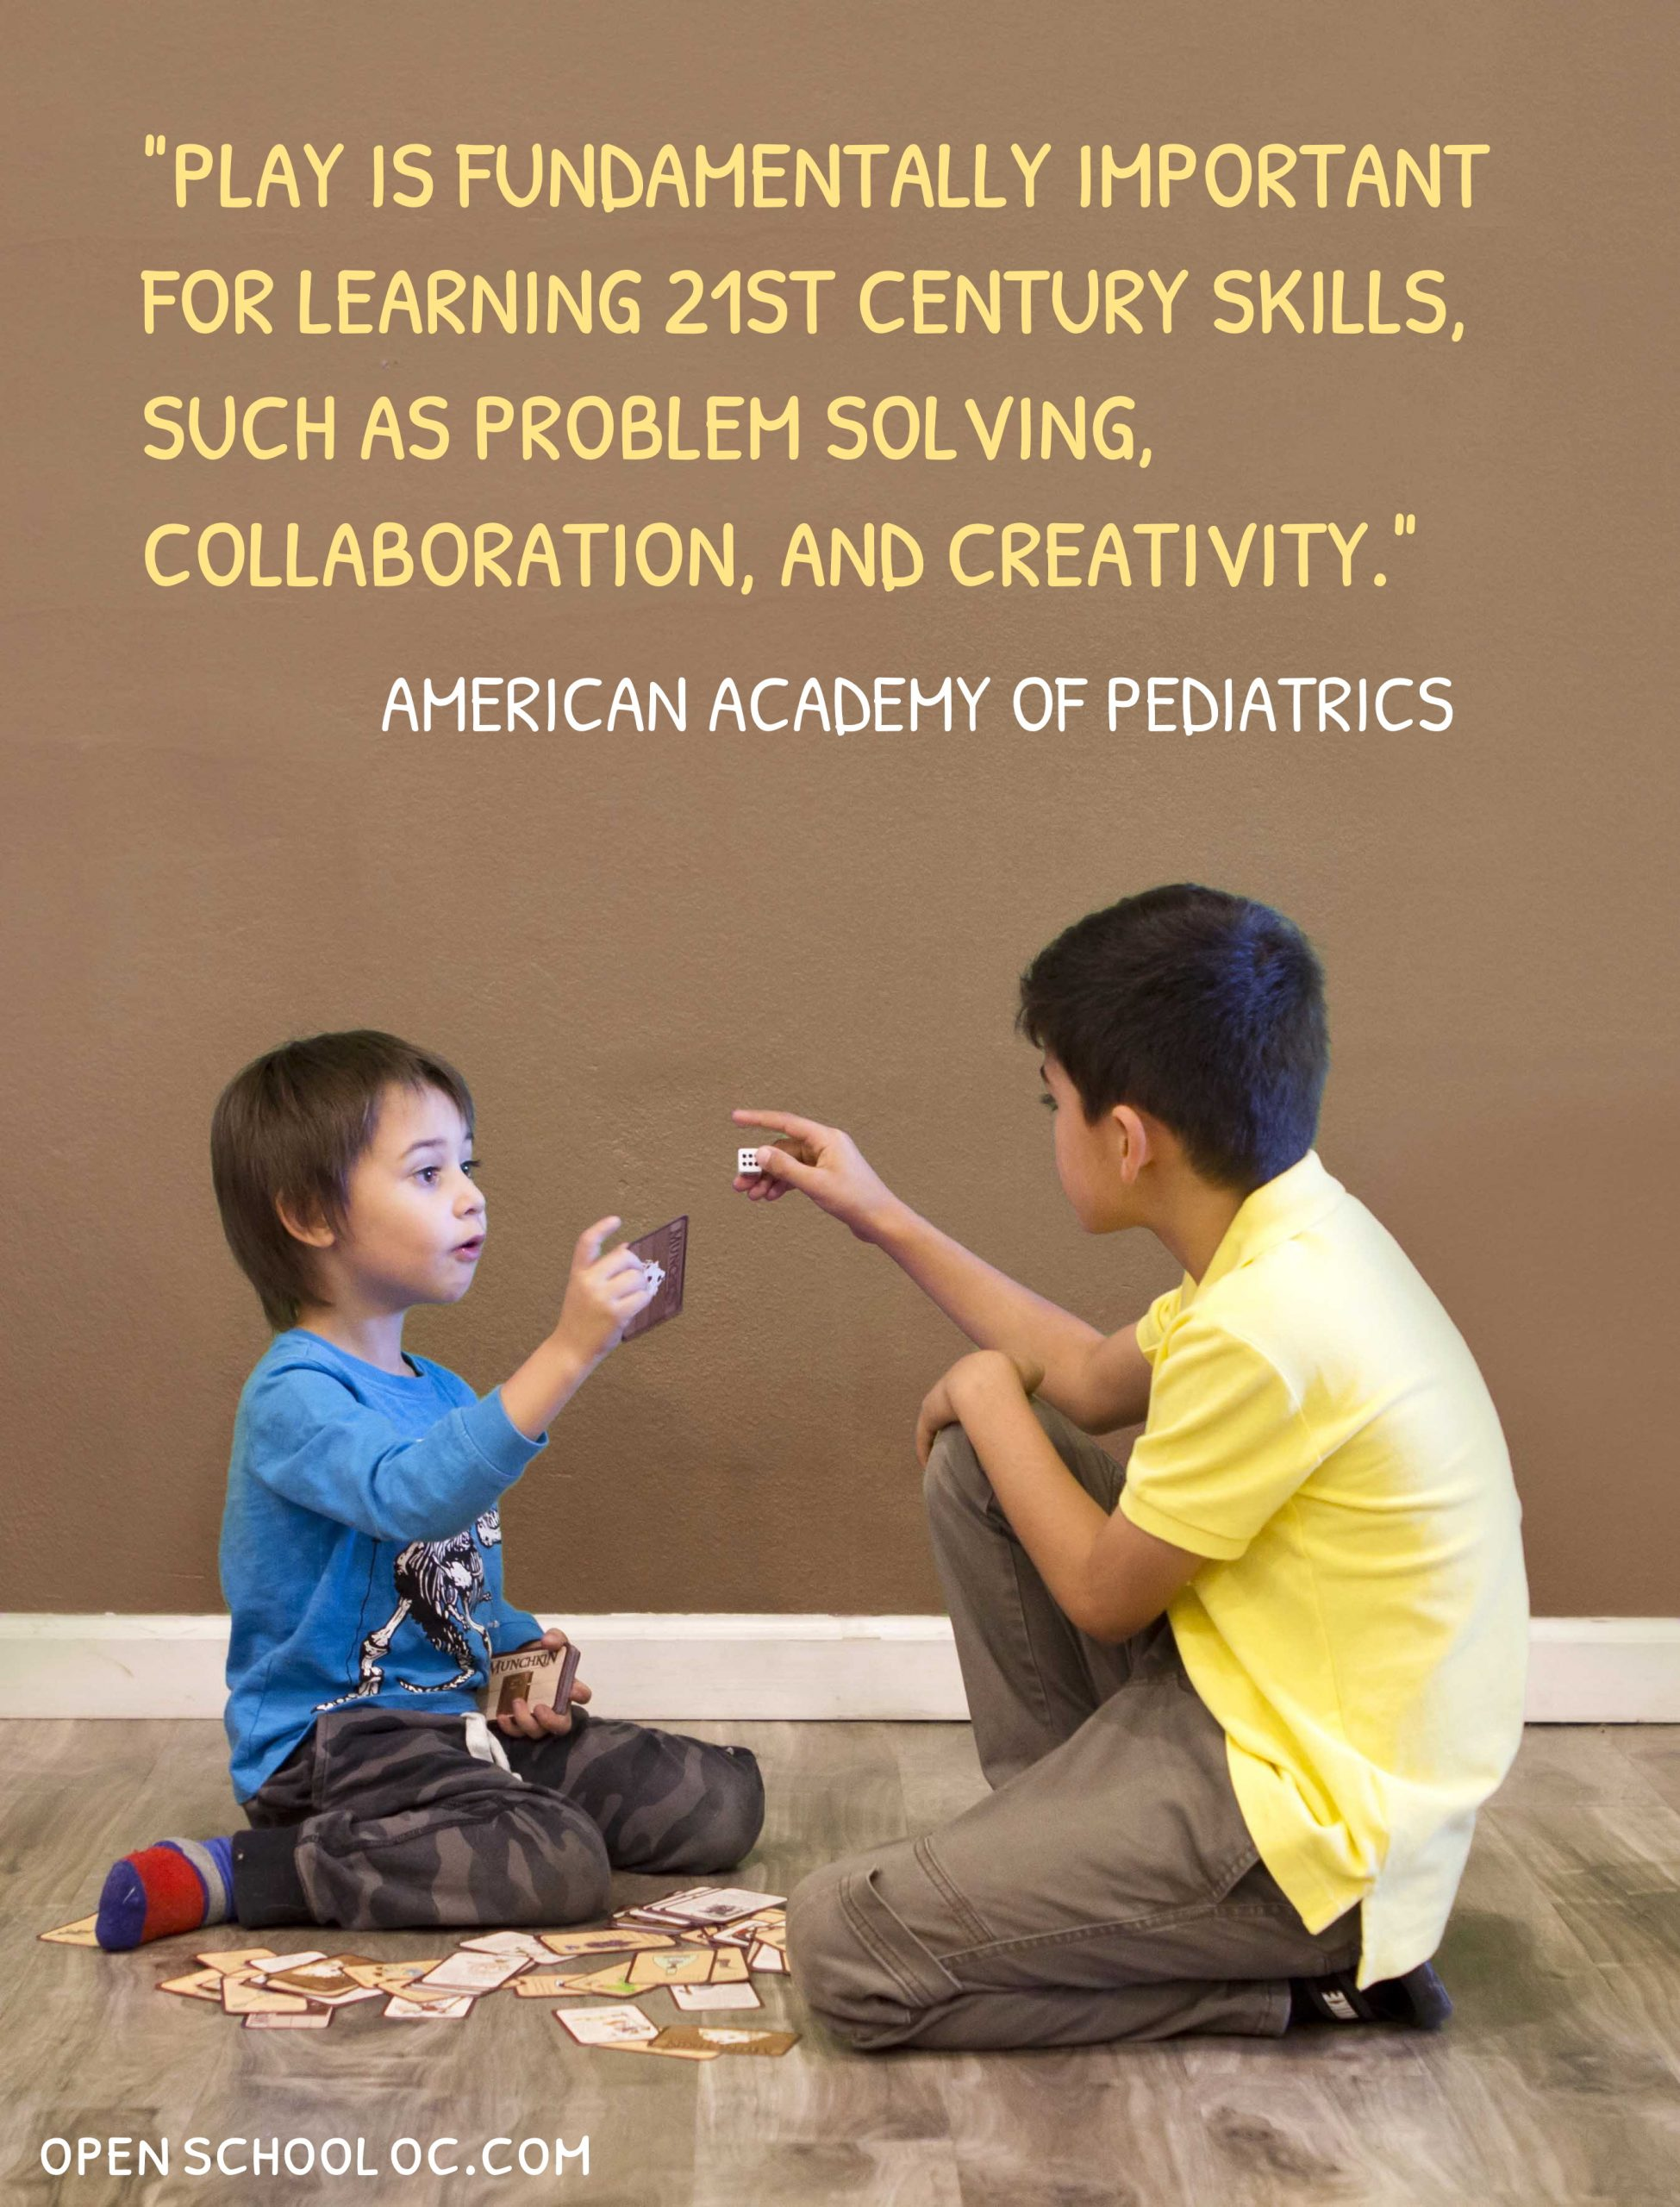 Play is fundamentally important for learning 21st century skills, such as problem solving, collaboration, and creativity.